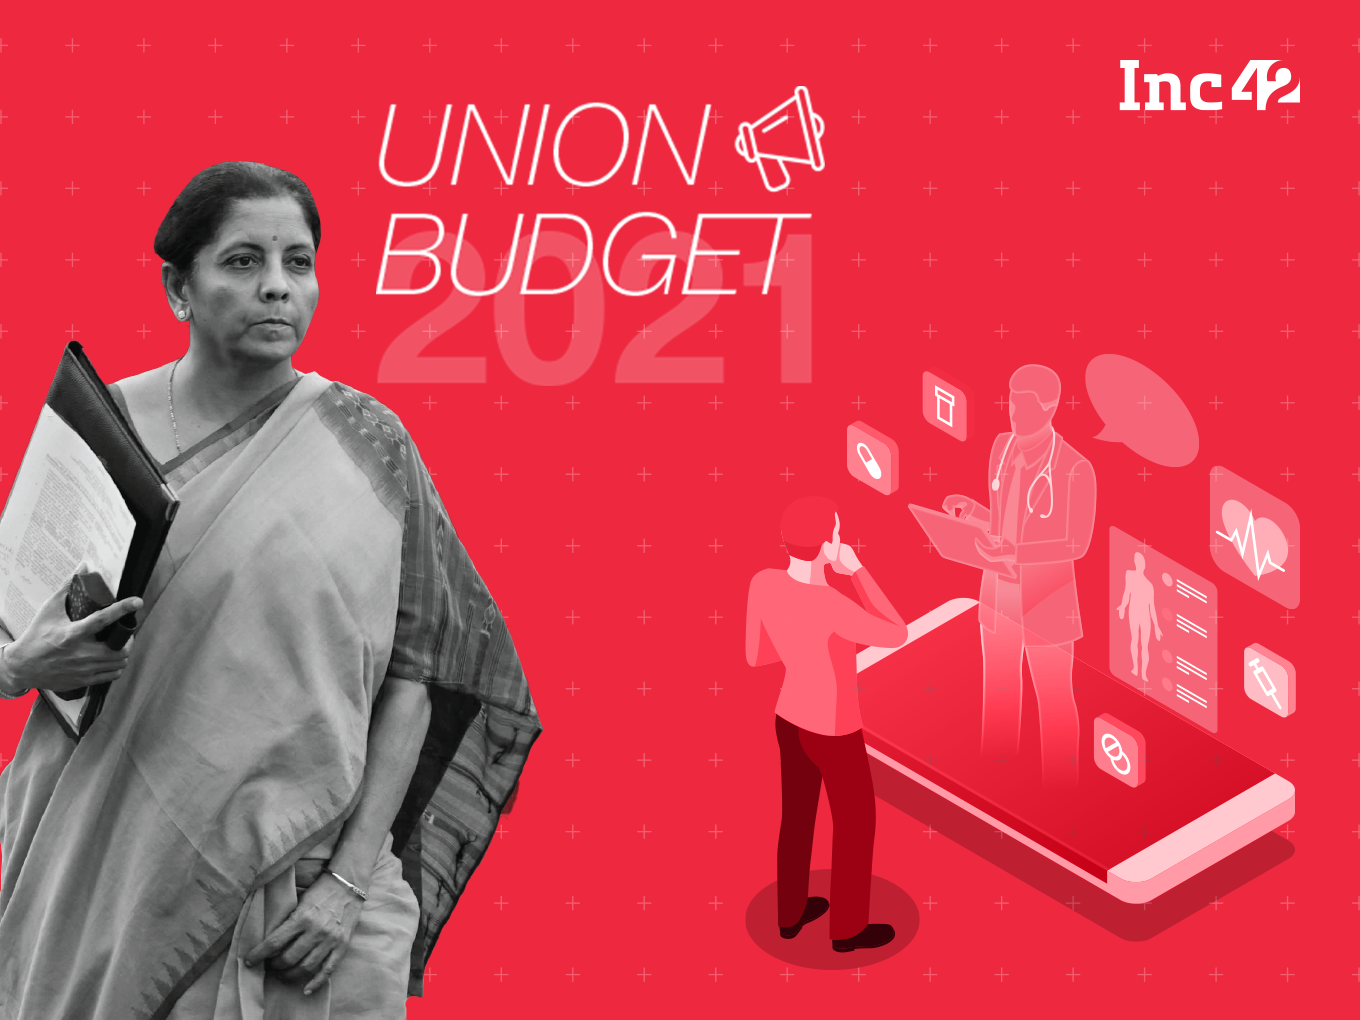 Union Budget 2021: Healthtech Startups Want PPP Projects, Better Digital Infra, Training Facilities And More